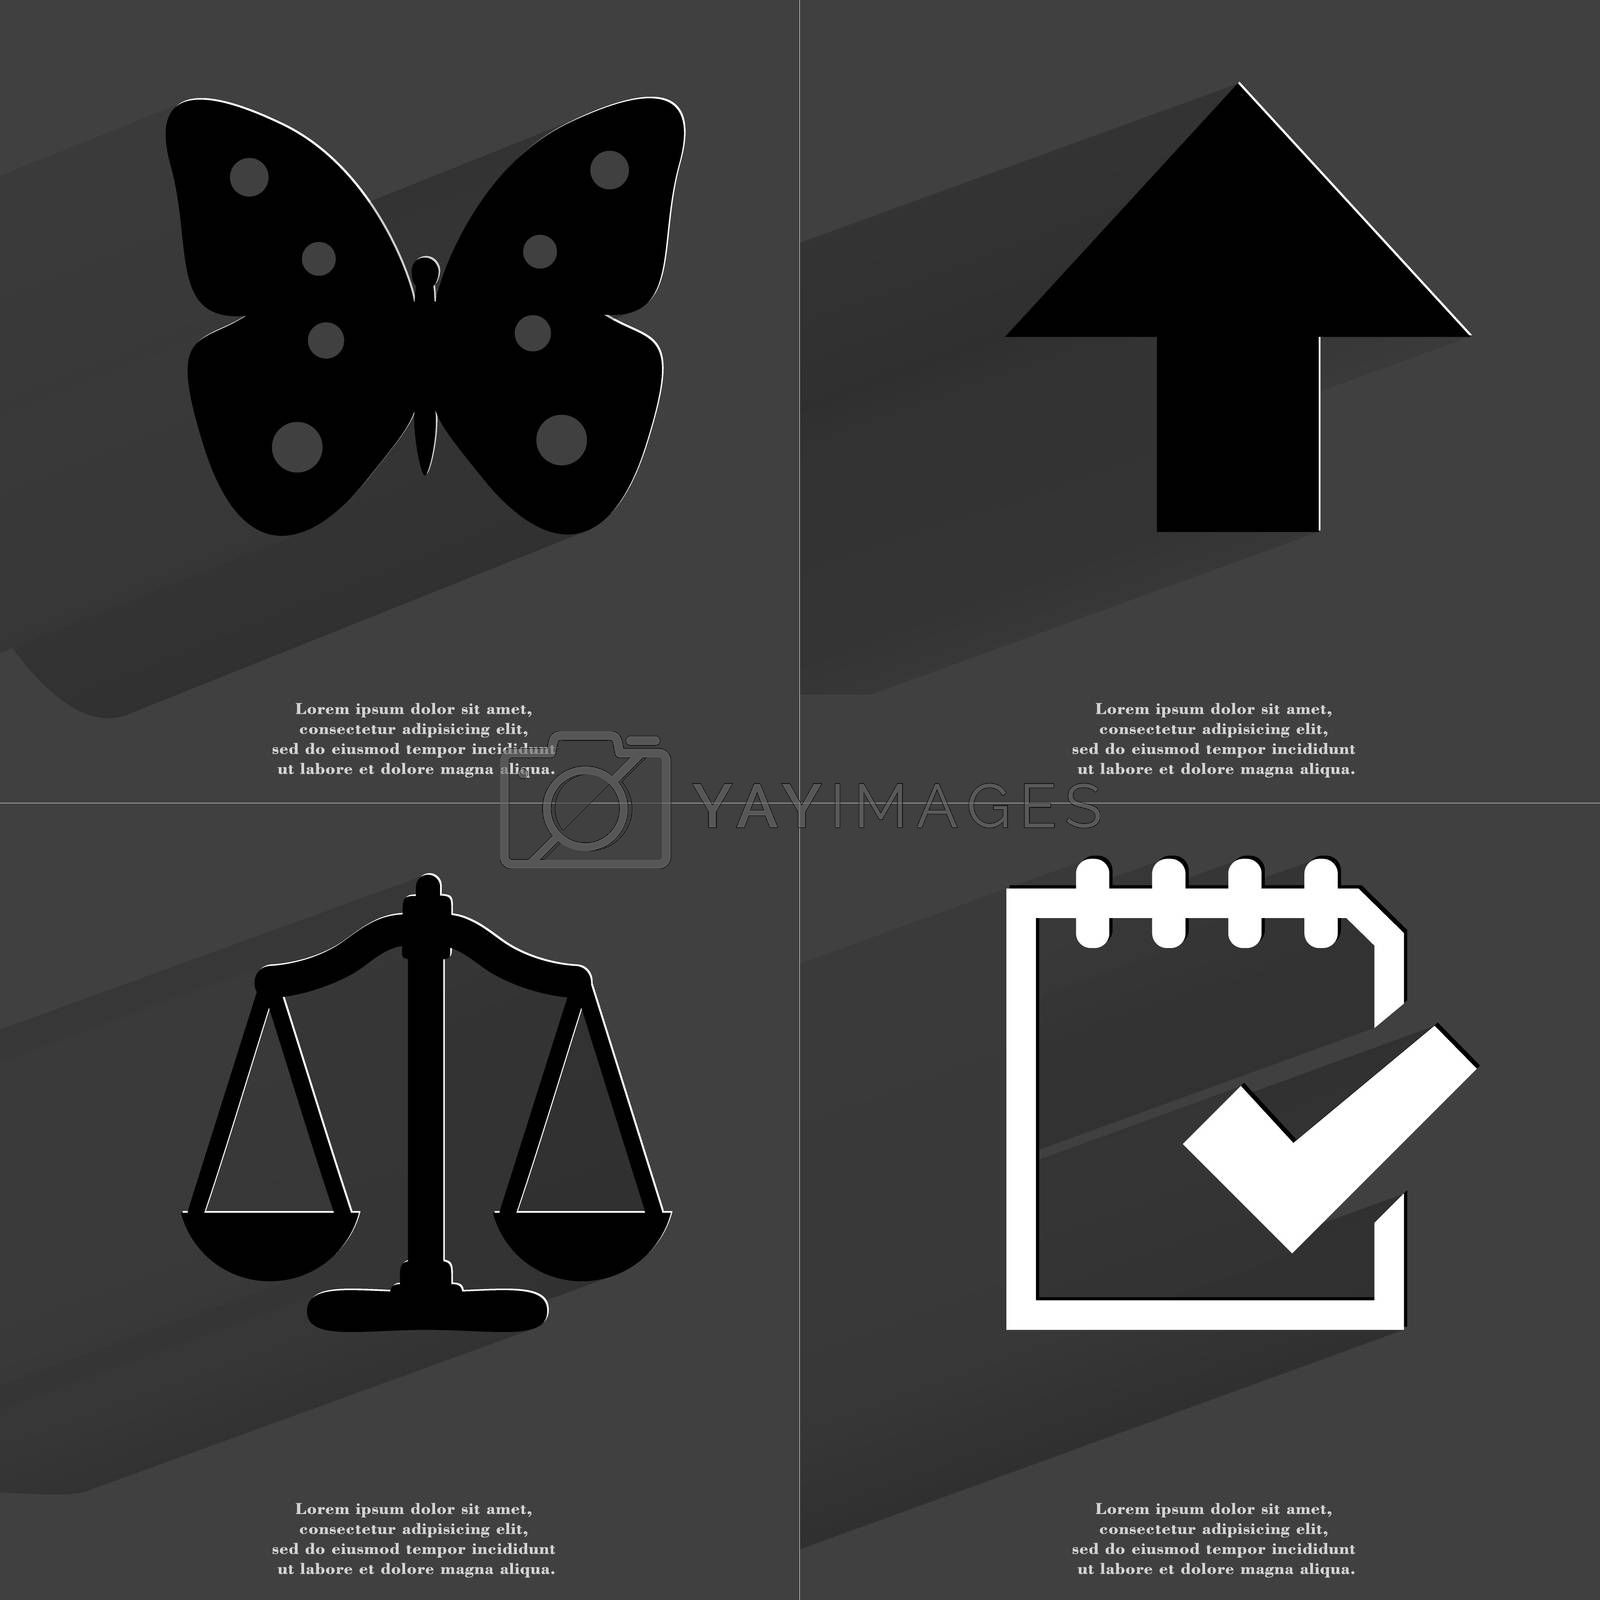 Butterfly, Arrow directed upwards, Scales, Task completed icon. Symbols with long shadow. Flat design by serhii_lohvyniuk